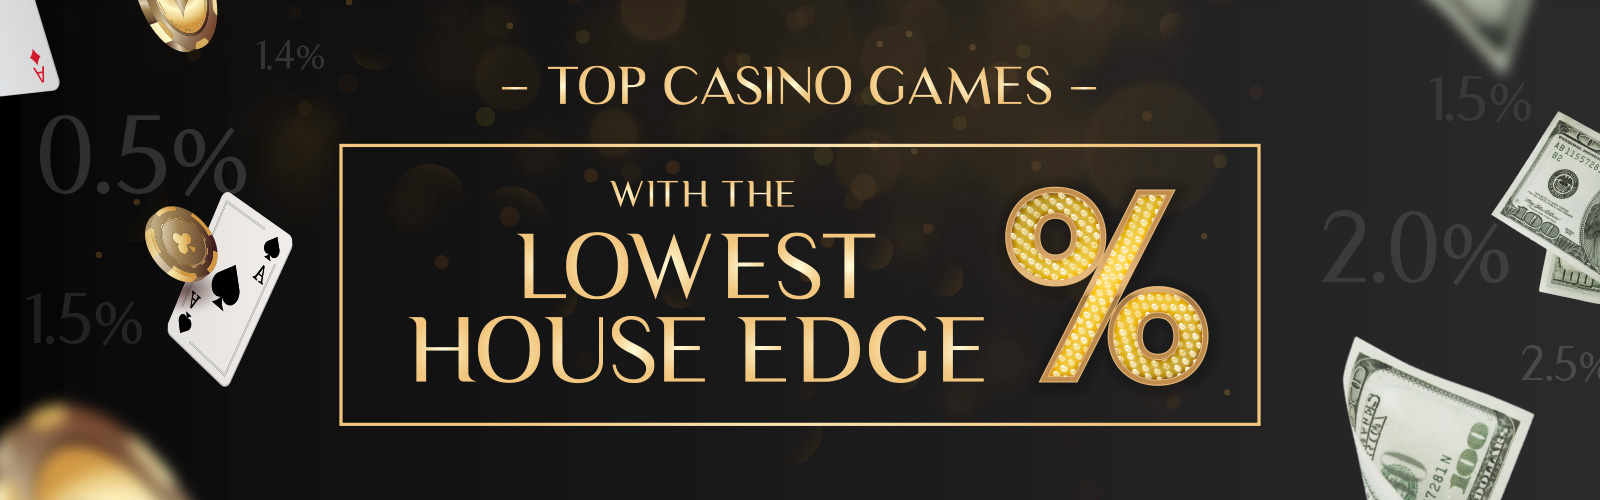 Top Casino Games with lowest House Edge